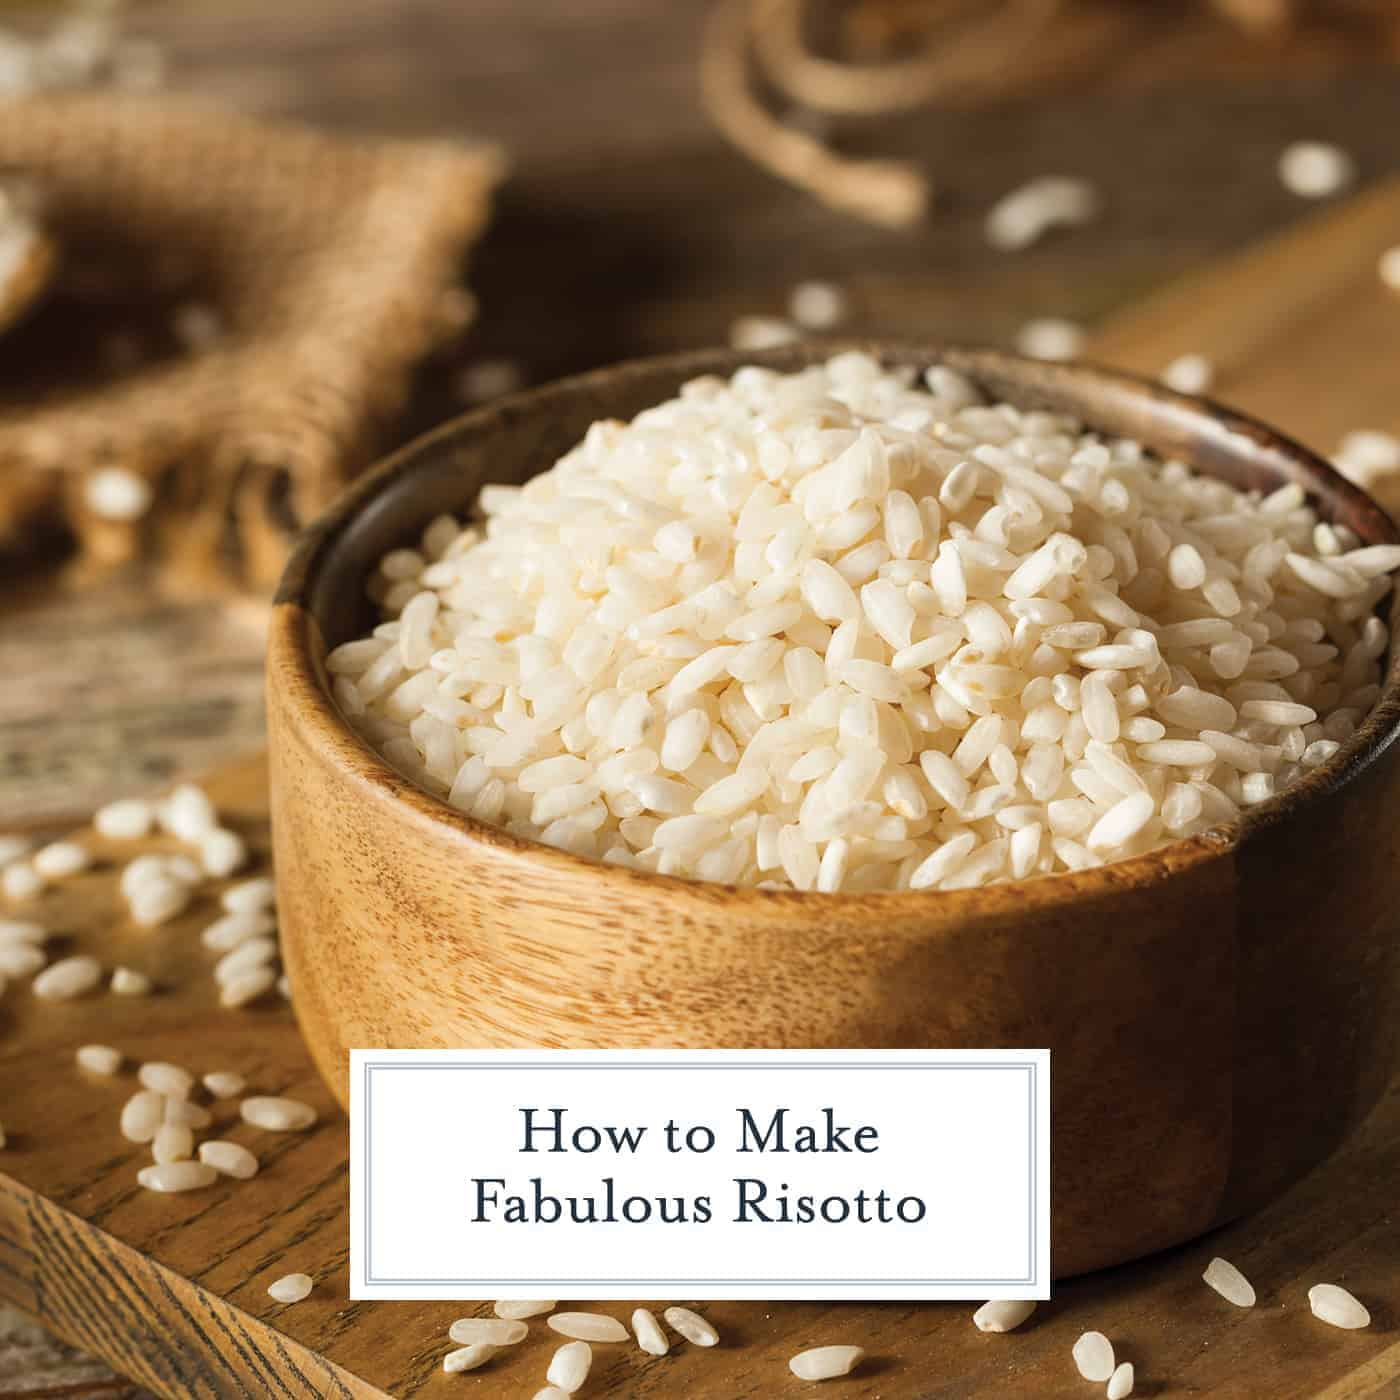 Risotto isn't just a restaurant dish. You can make any risotto recipe at home using these easy tips and tricks! Plus, six ways to make risotto!#howtomakerisotto #risottorecipes www.savoryexperiments.com